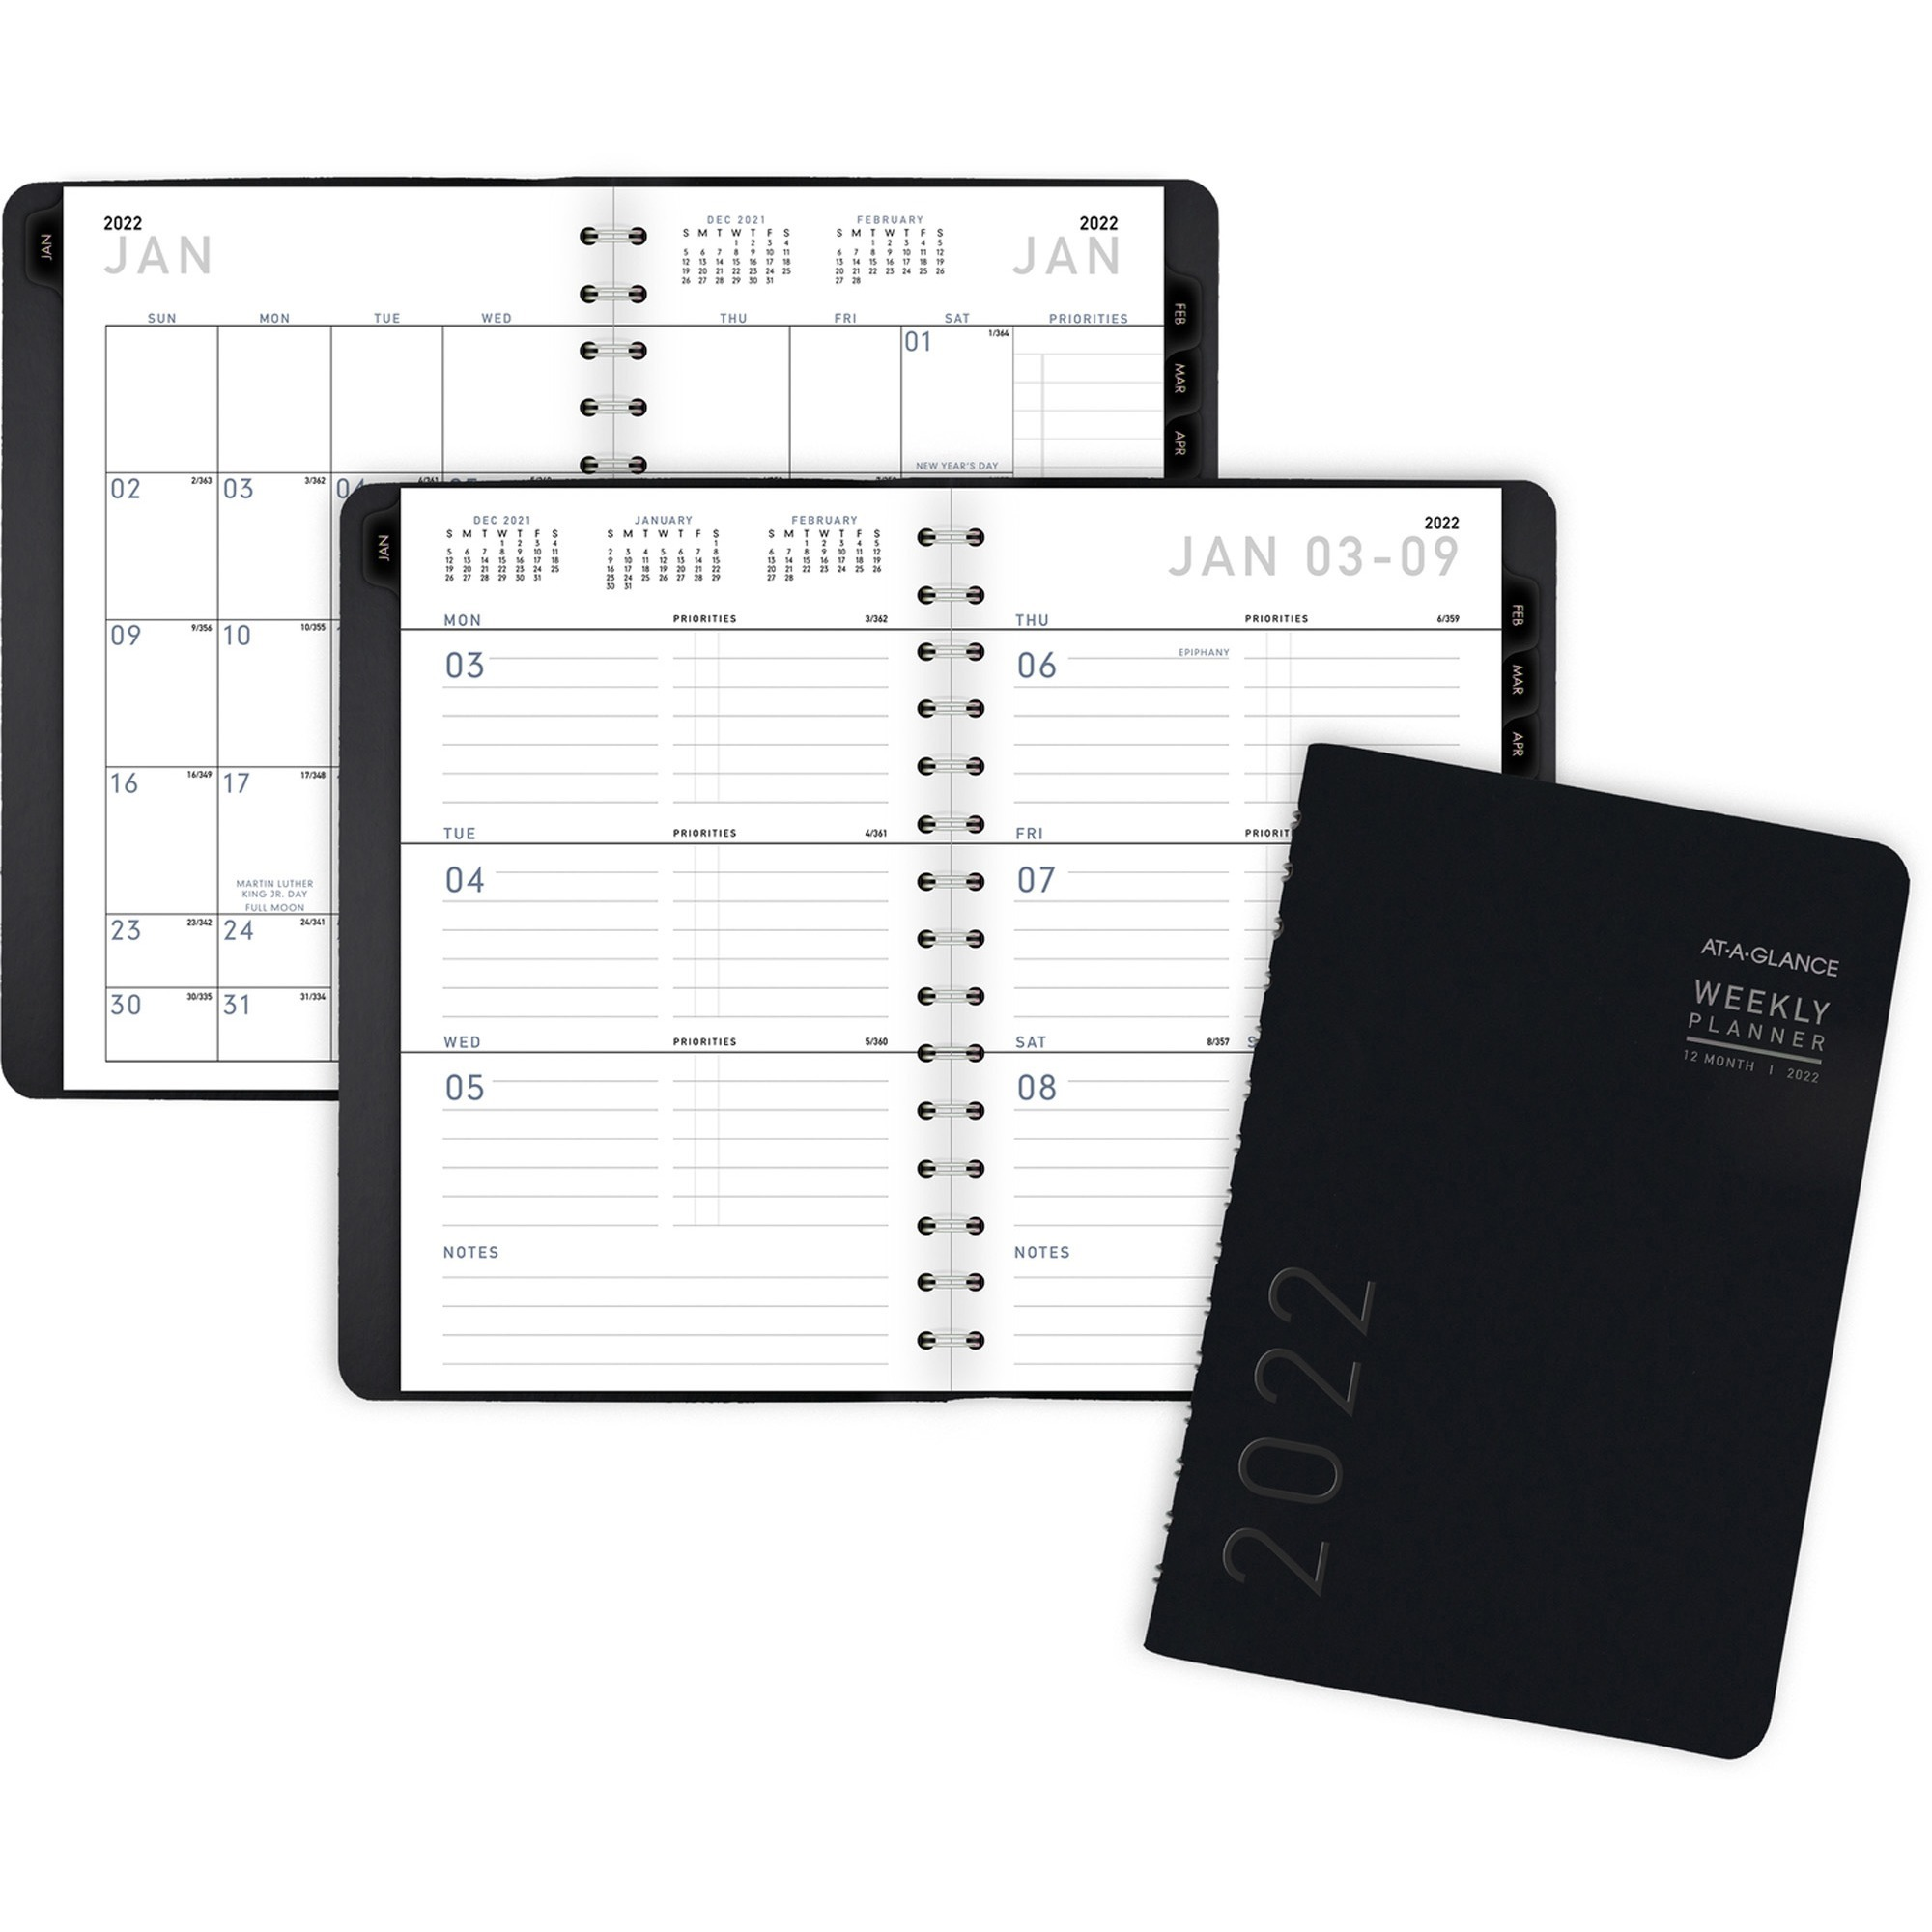 At-A-Glance Contemporary Weekly/Monthly Planner - Yes - Weekly, Monthly - 1 Year - January 2020 till December 2020 - 1 Week, 1 Month Double Page Layout - 4 7/8